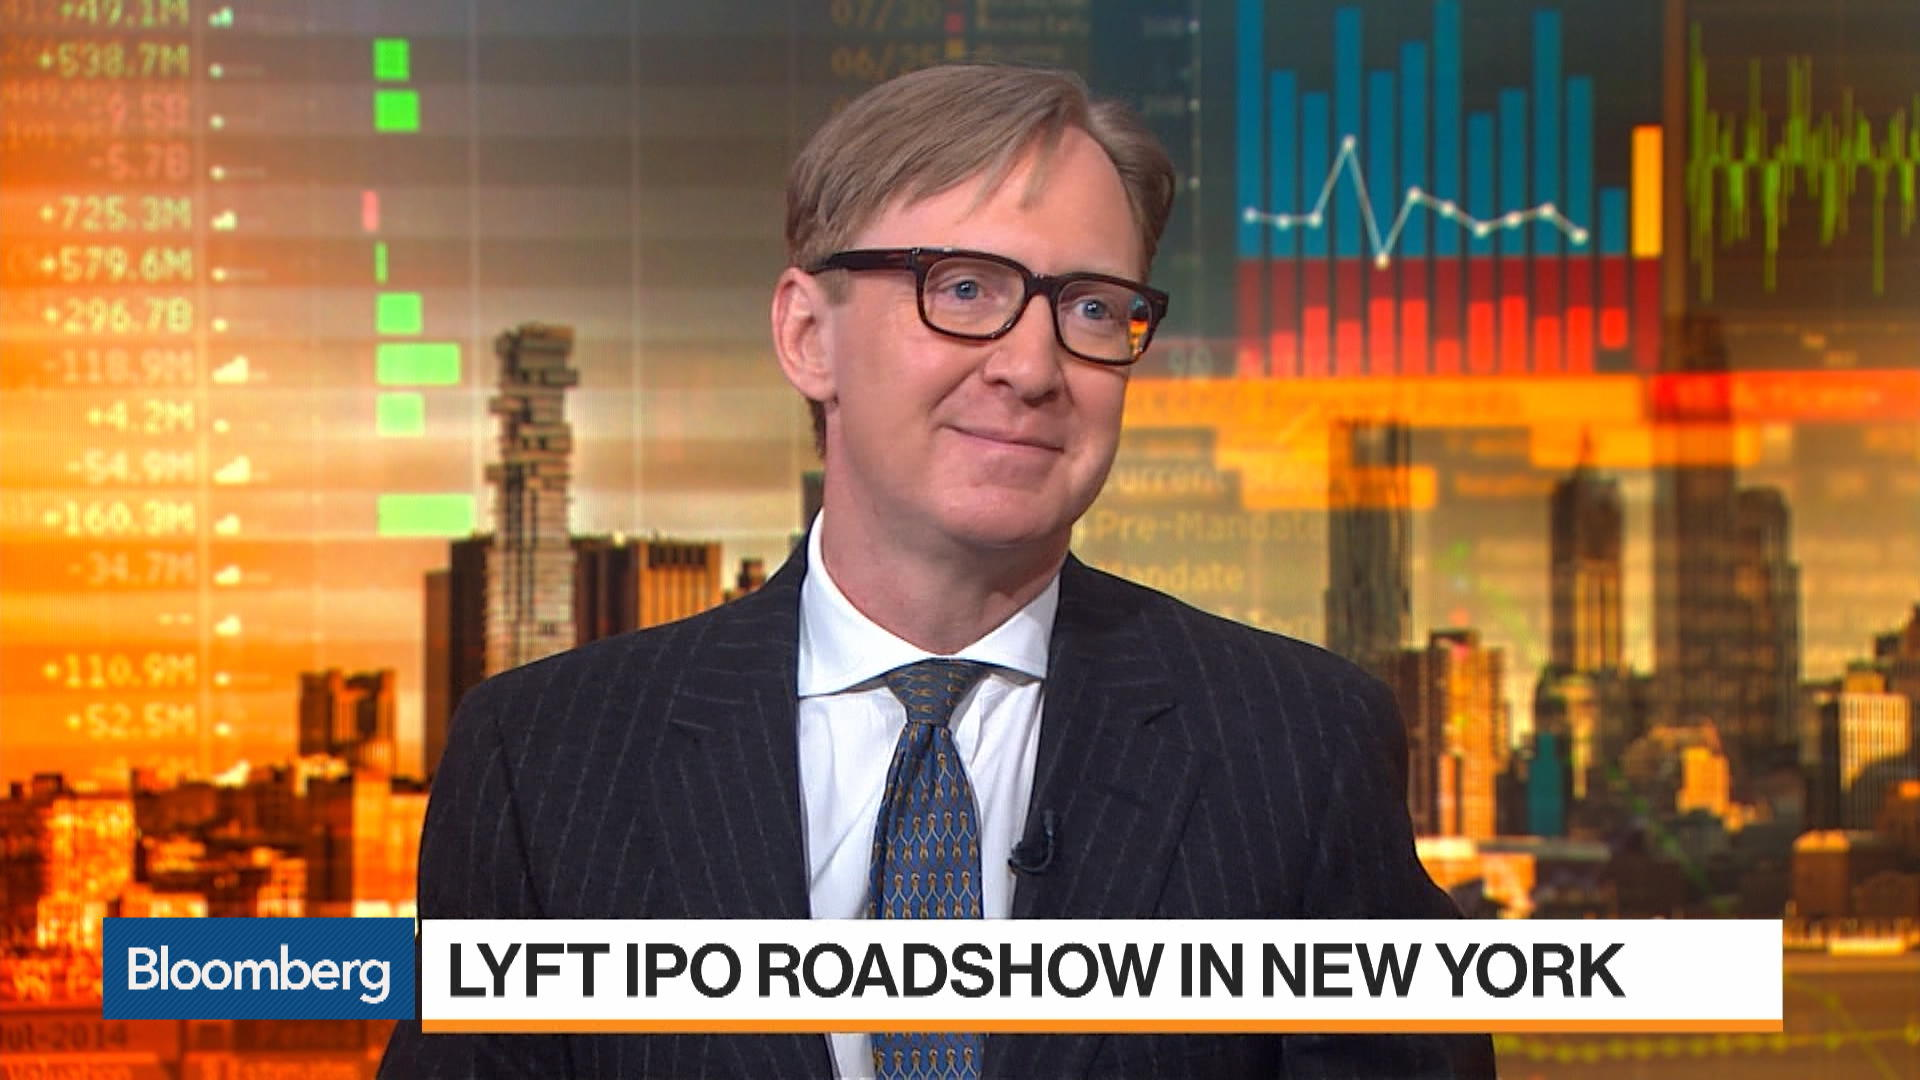 Lyft's Debut Is Reminiscent of Snap's IPO, Triton Research CEO Warns